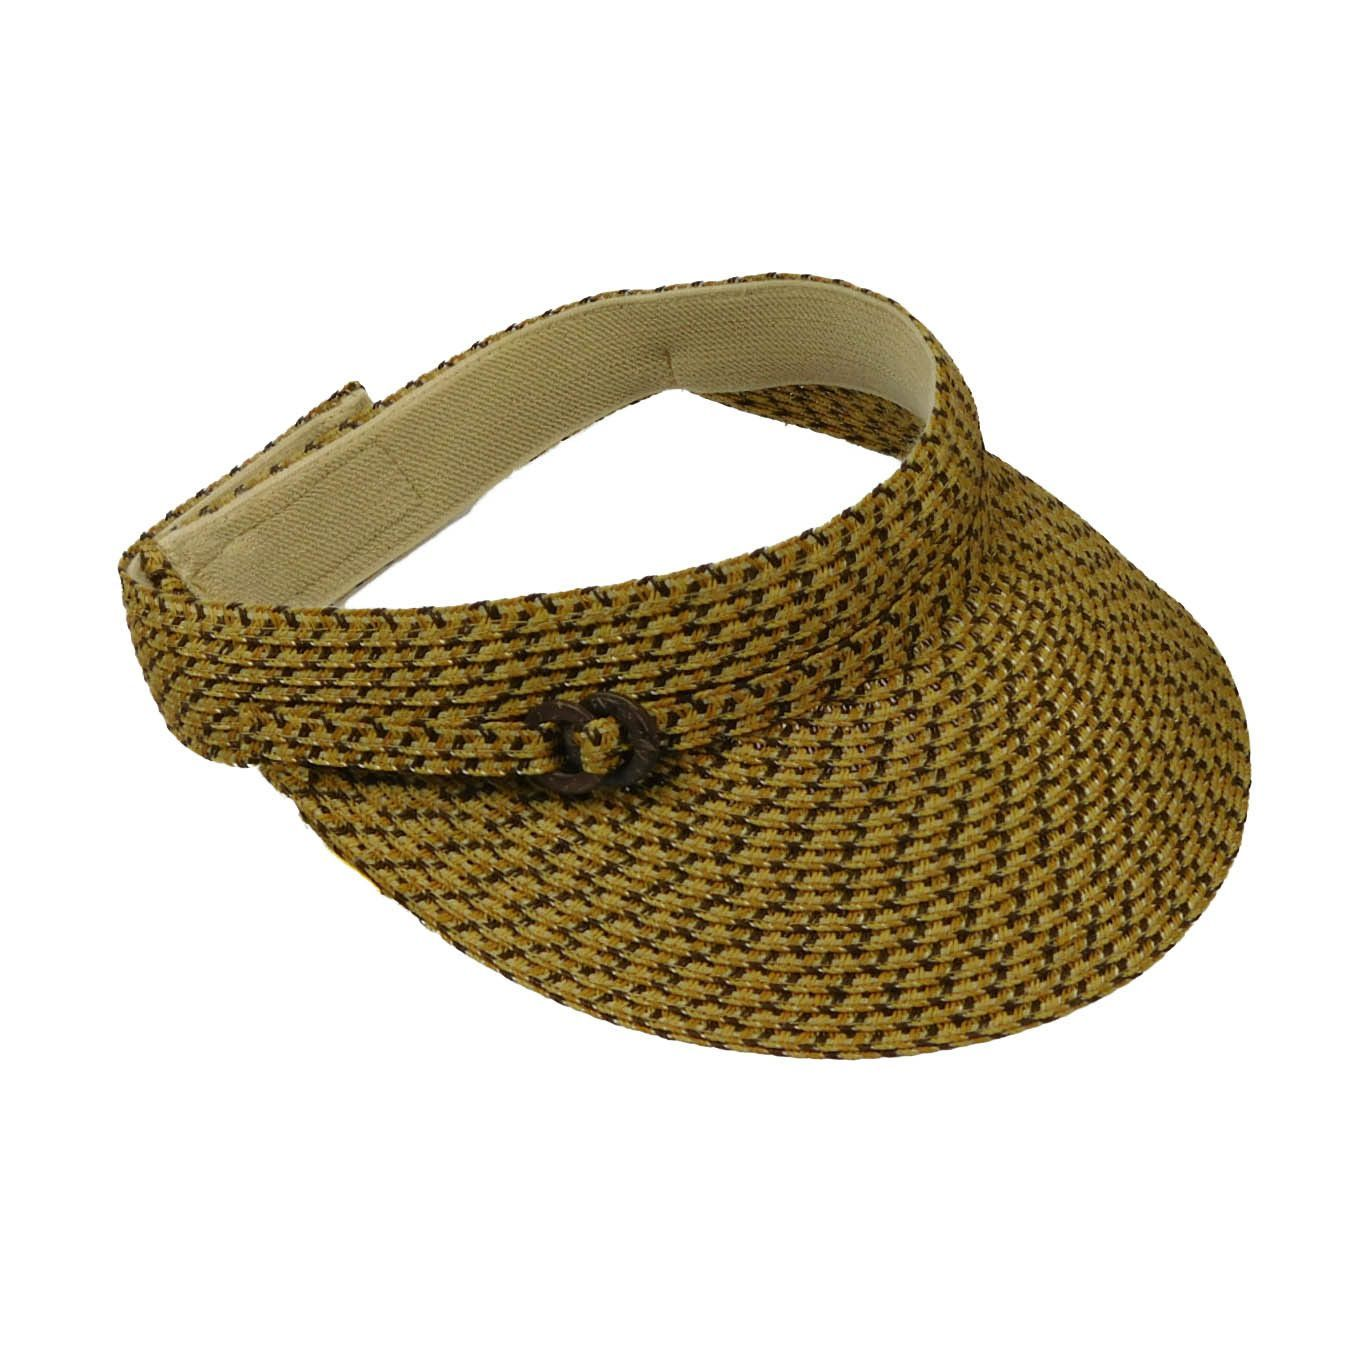 Straw Visor with Belt Buckle Accent